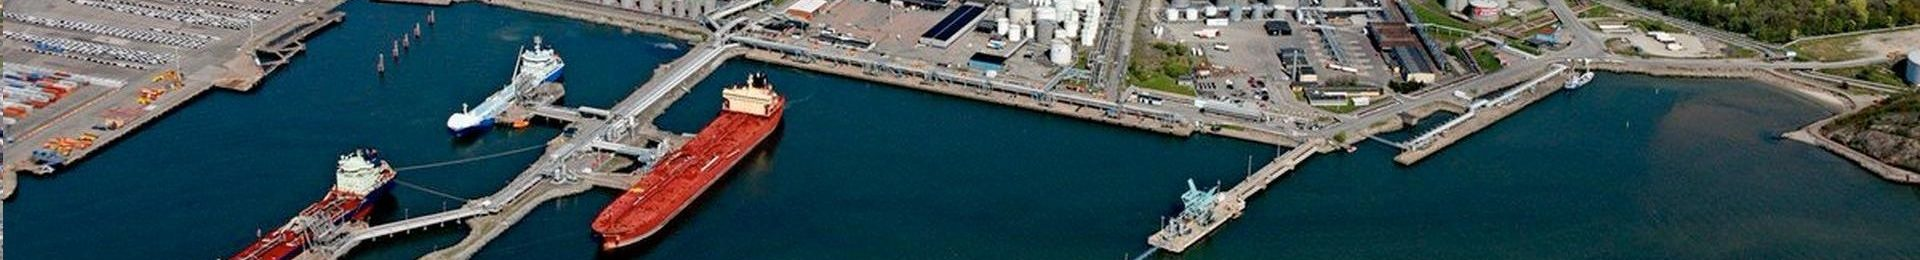 LNG project broadview energy solutions supply swedegas